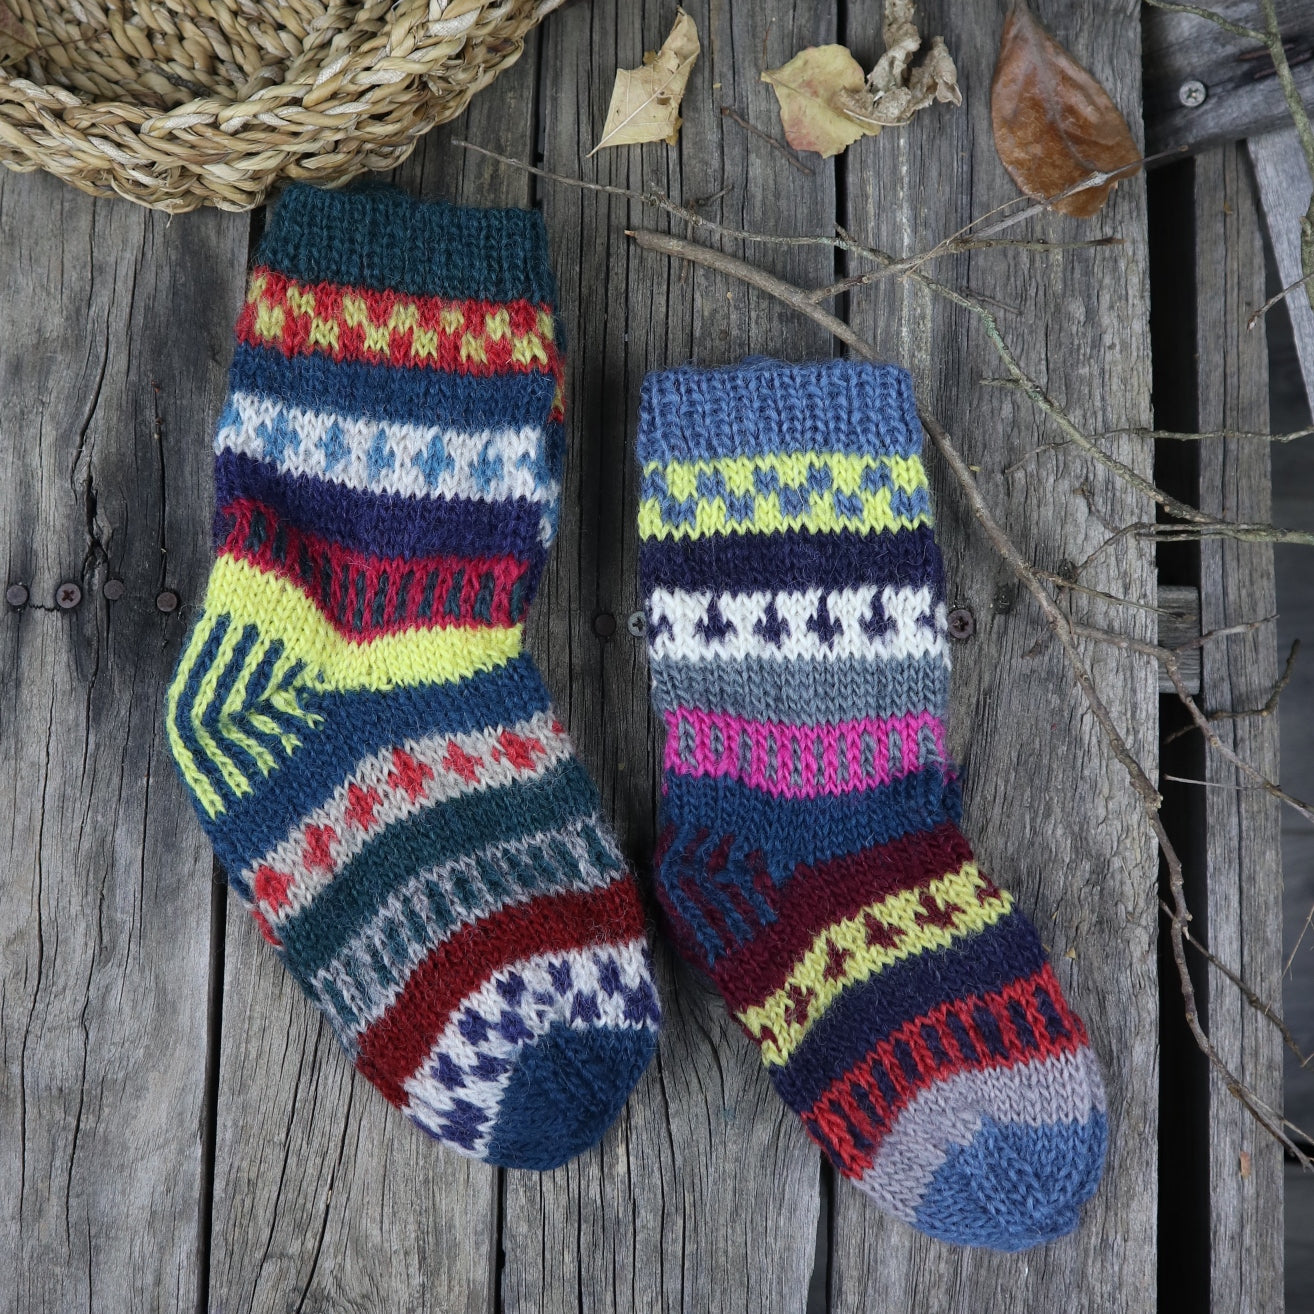 Fair Trade Ethical Children's Patterned Woollen Socks in Green, Grey and Red